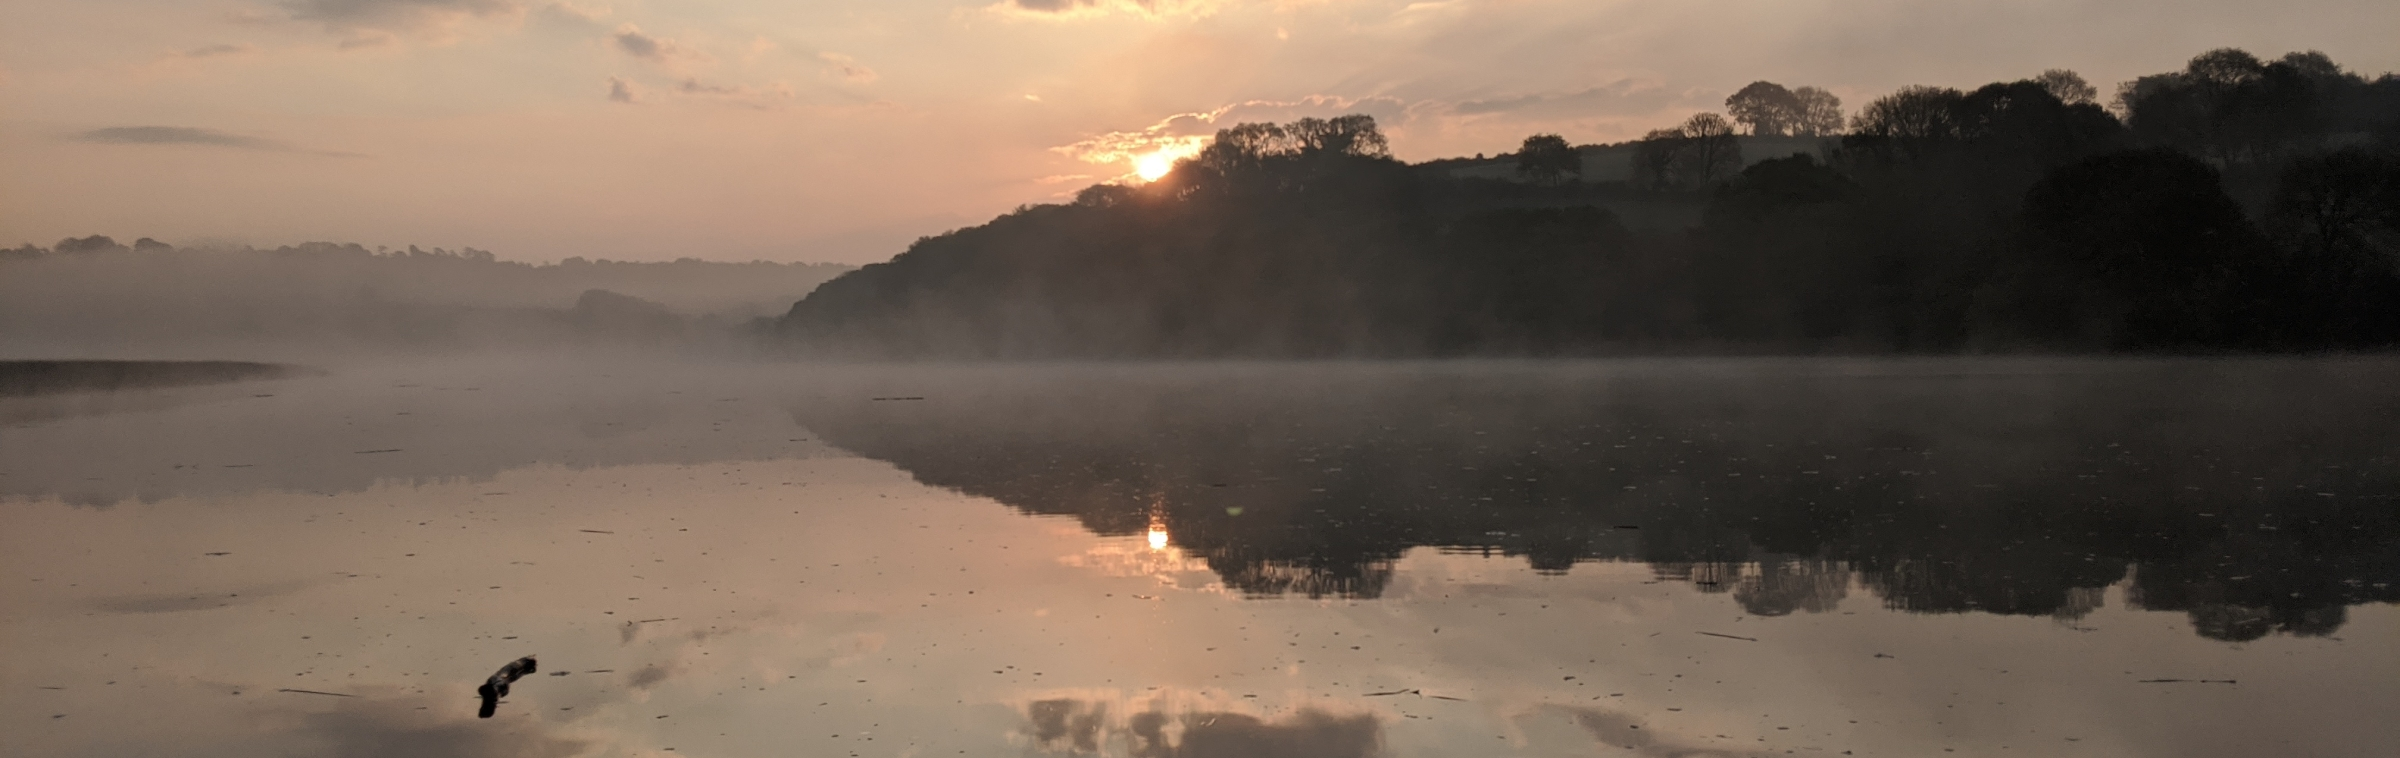 Paddleboarding the Tamar estuary on an early winter morning. Photo: C Braungardt 2021